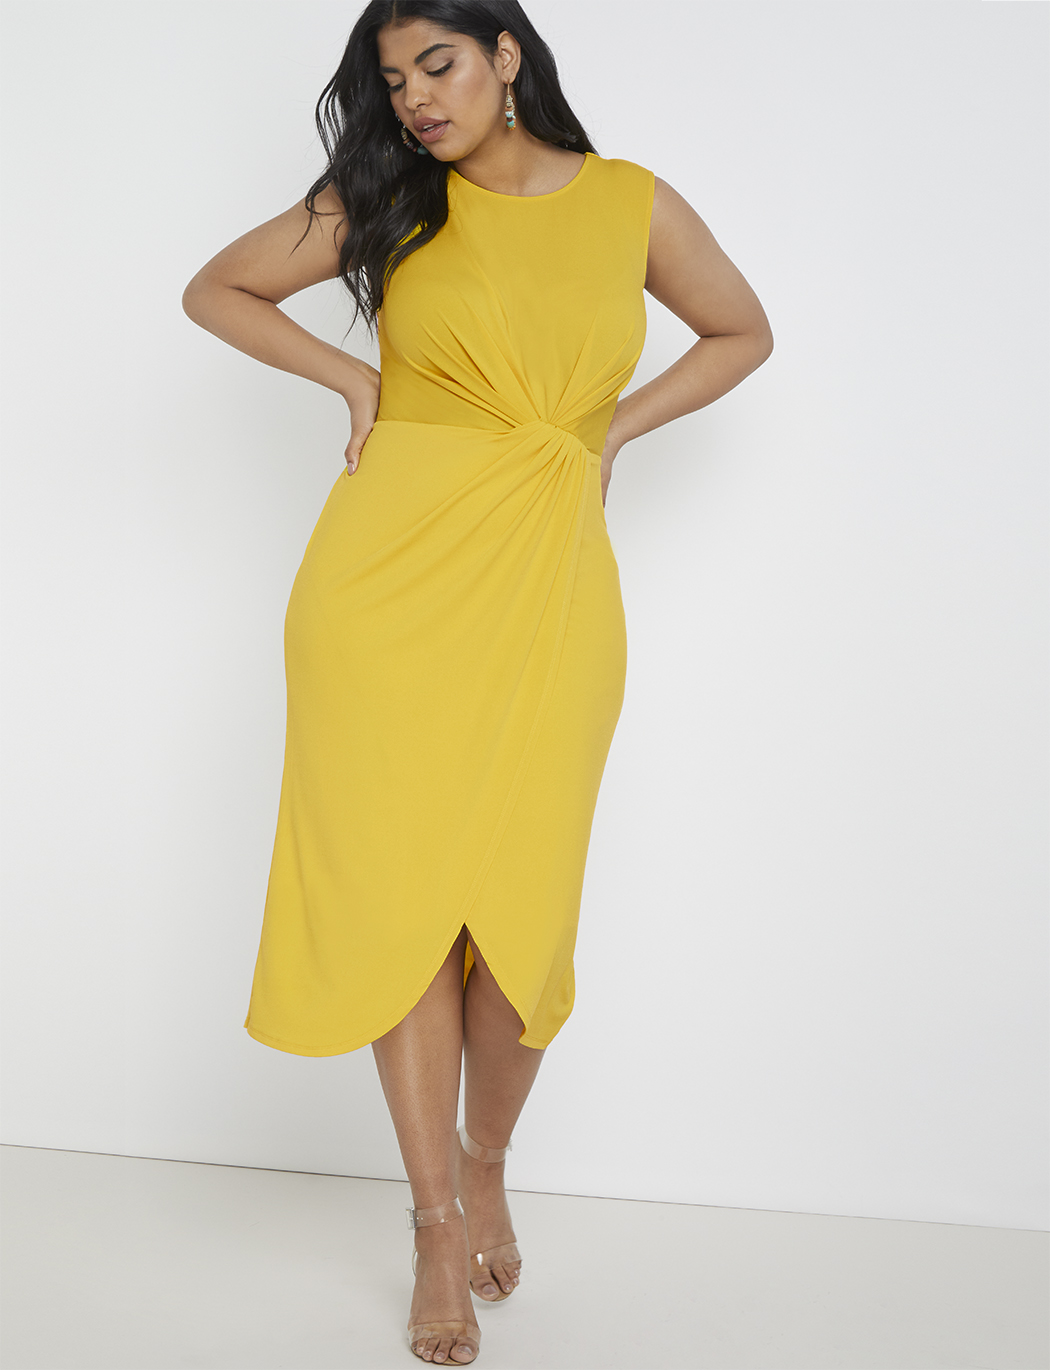 Draped Front Midi Dress | Women\'s Plus Size Dresses | ELOQUII